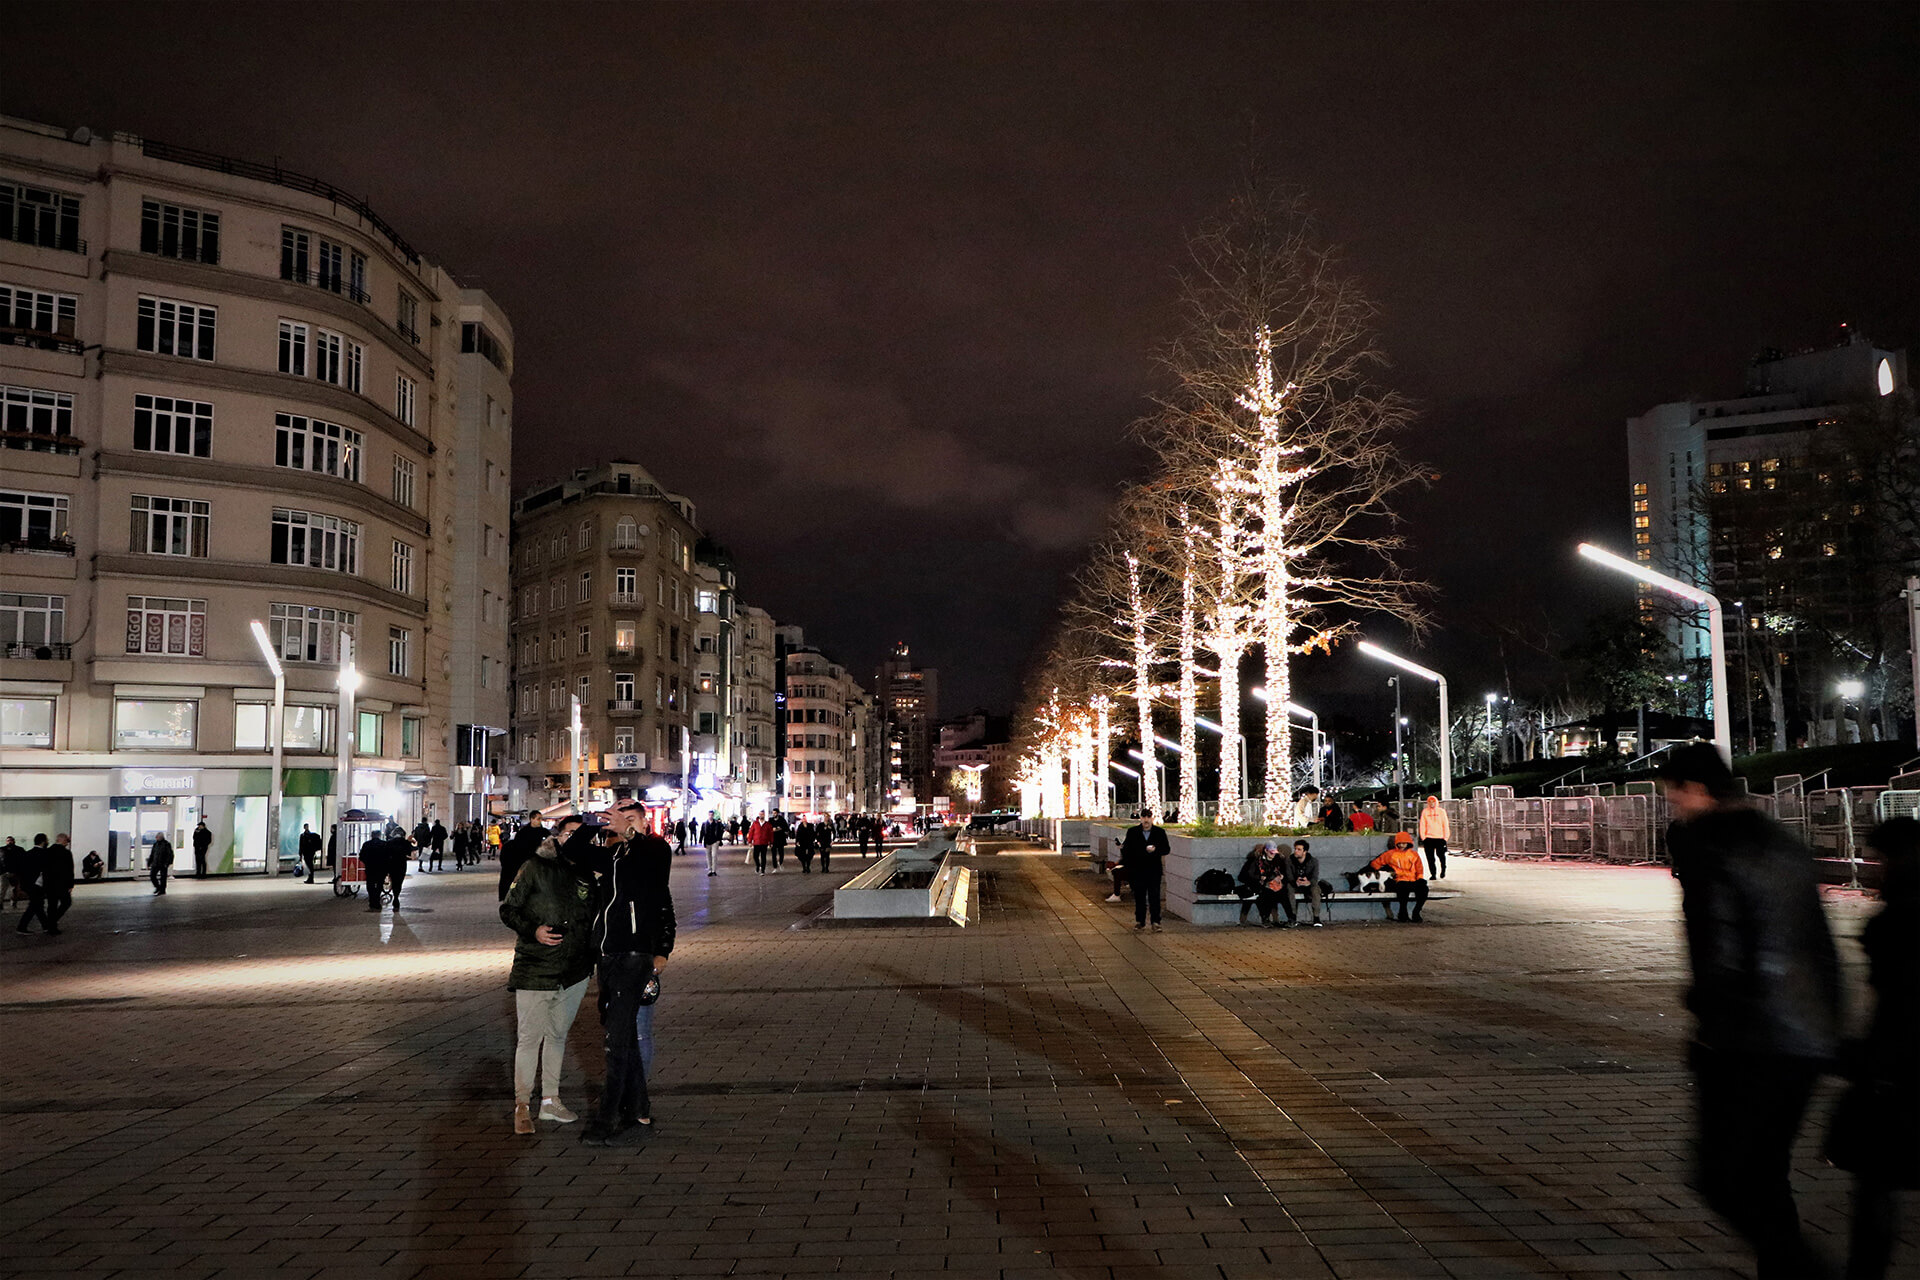 Taksim Square, Istanbul, in more festive times | Maidan or Town Square | STIRworld